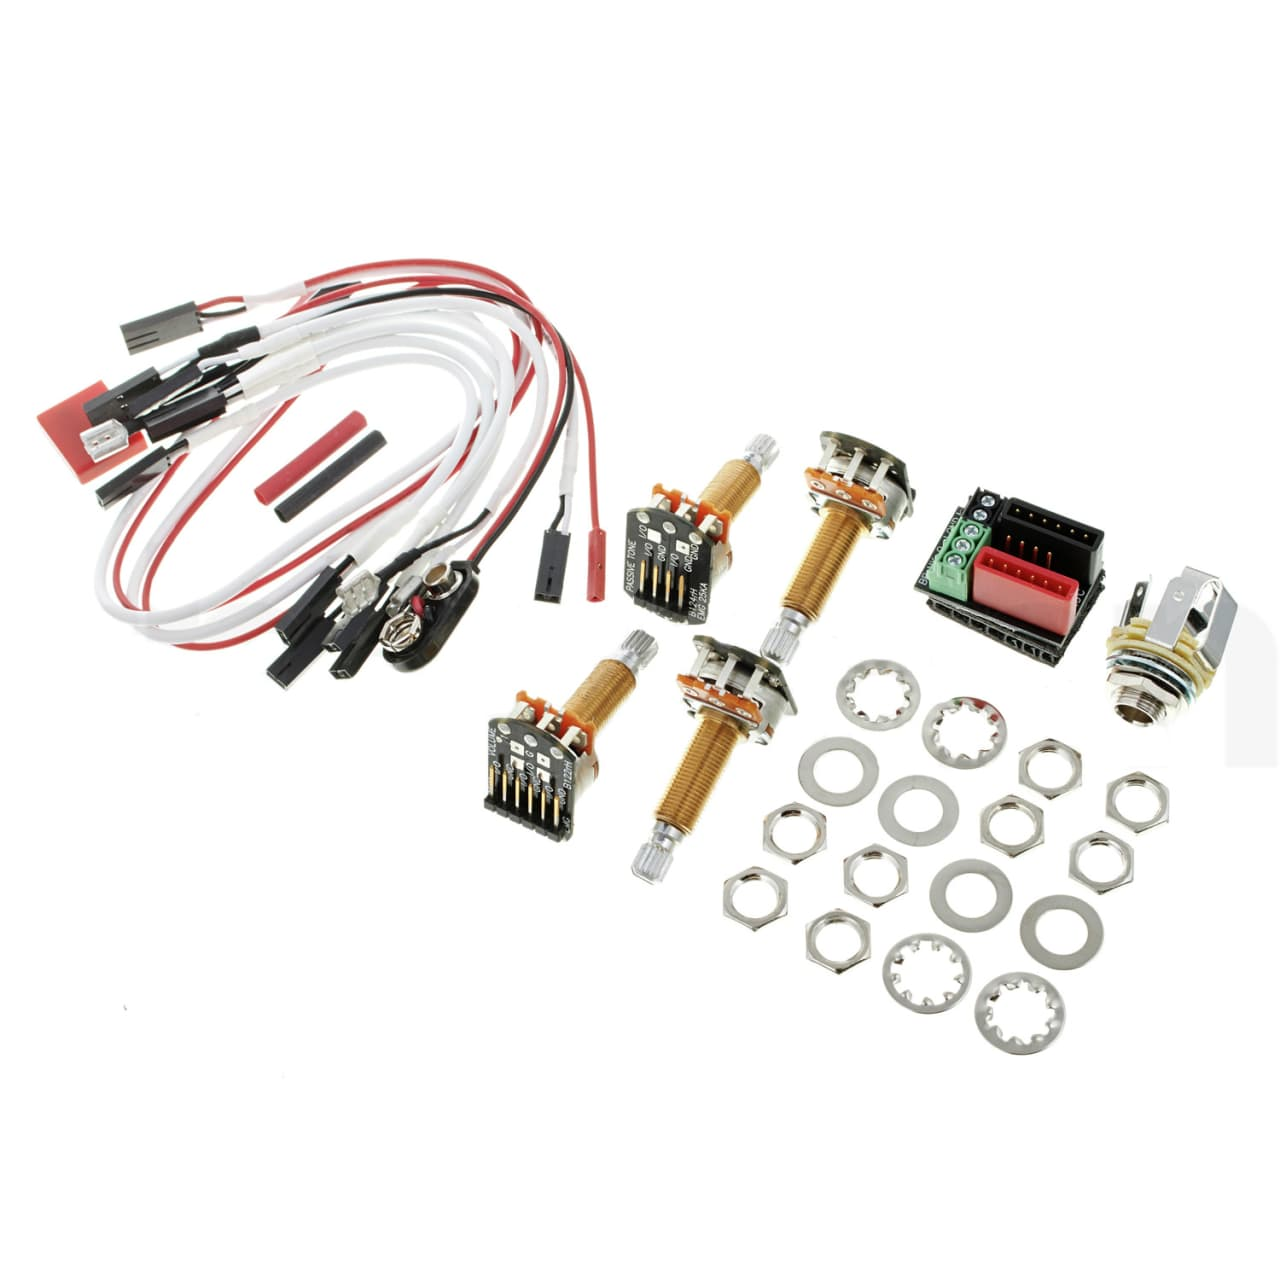 New Emg Solderless Wiring Conversion Kit For 1 2 Pickups Manual Guide